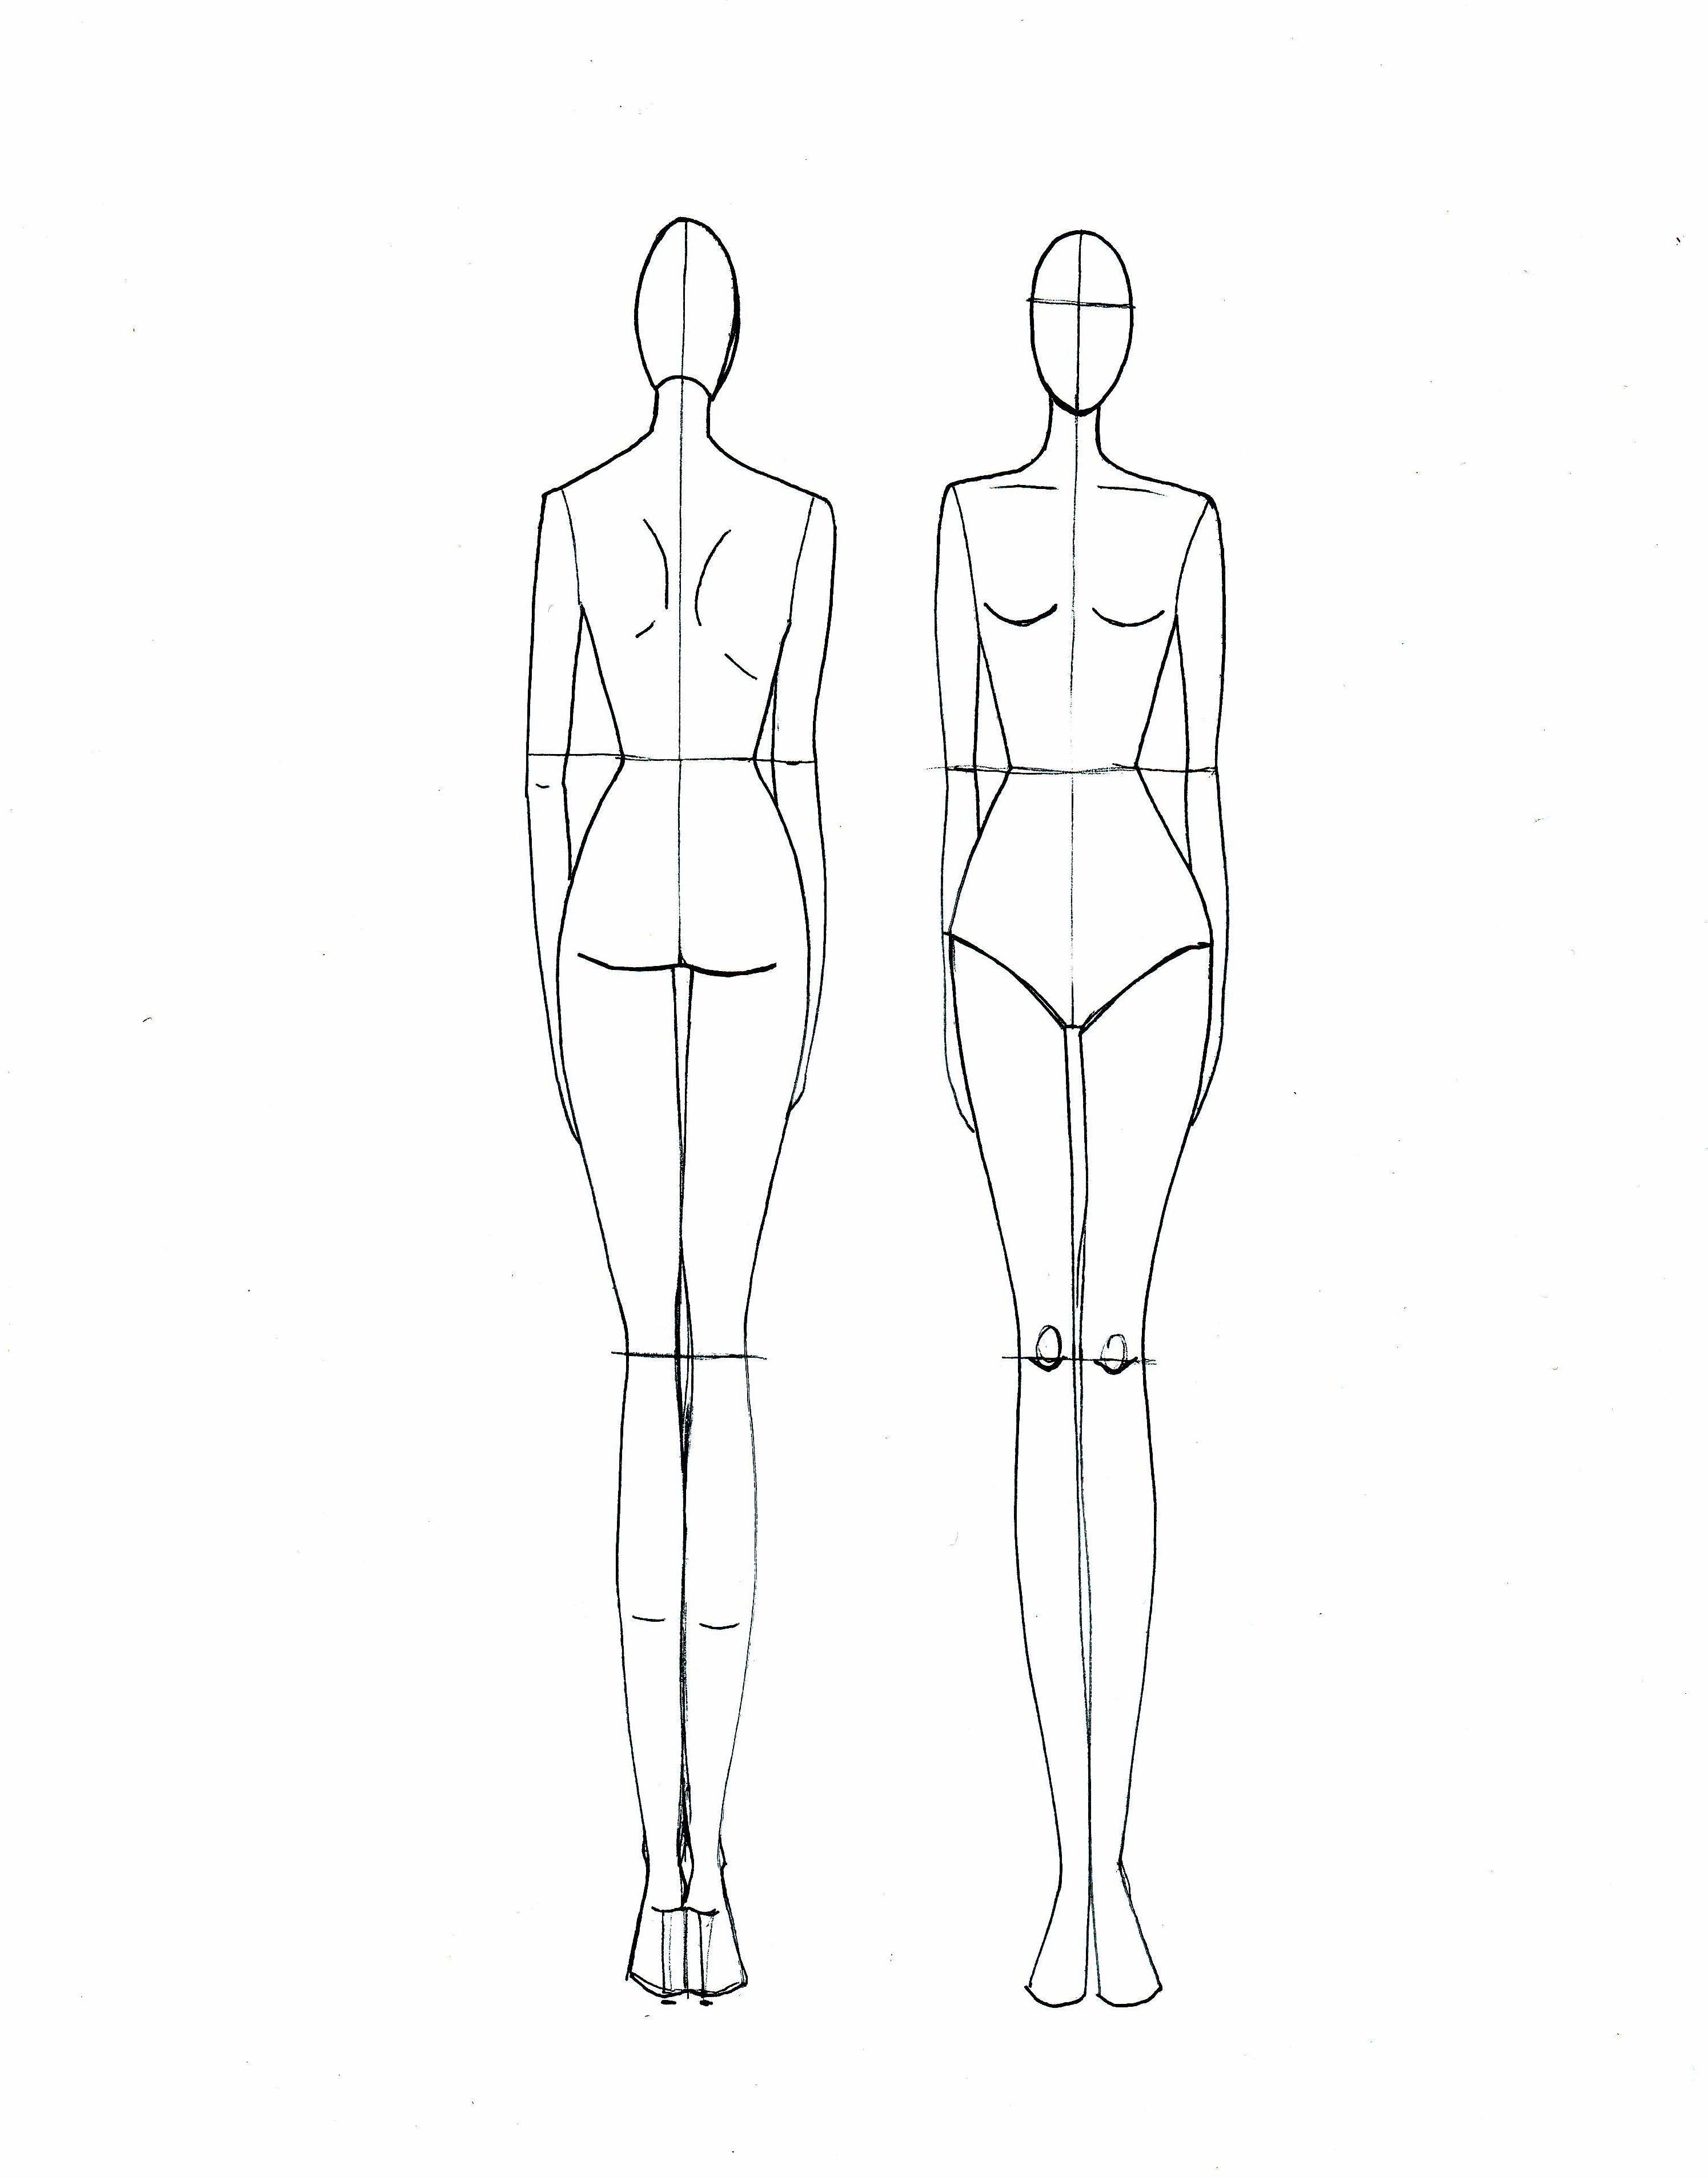 Body Sketch Template At Paintingvalley | Explore Collection Of - Free Printable Fashion Model Templates